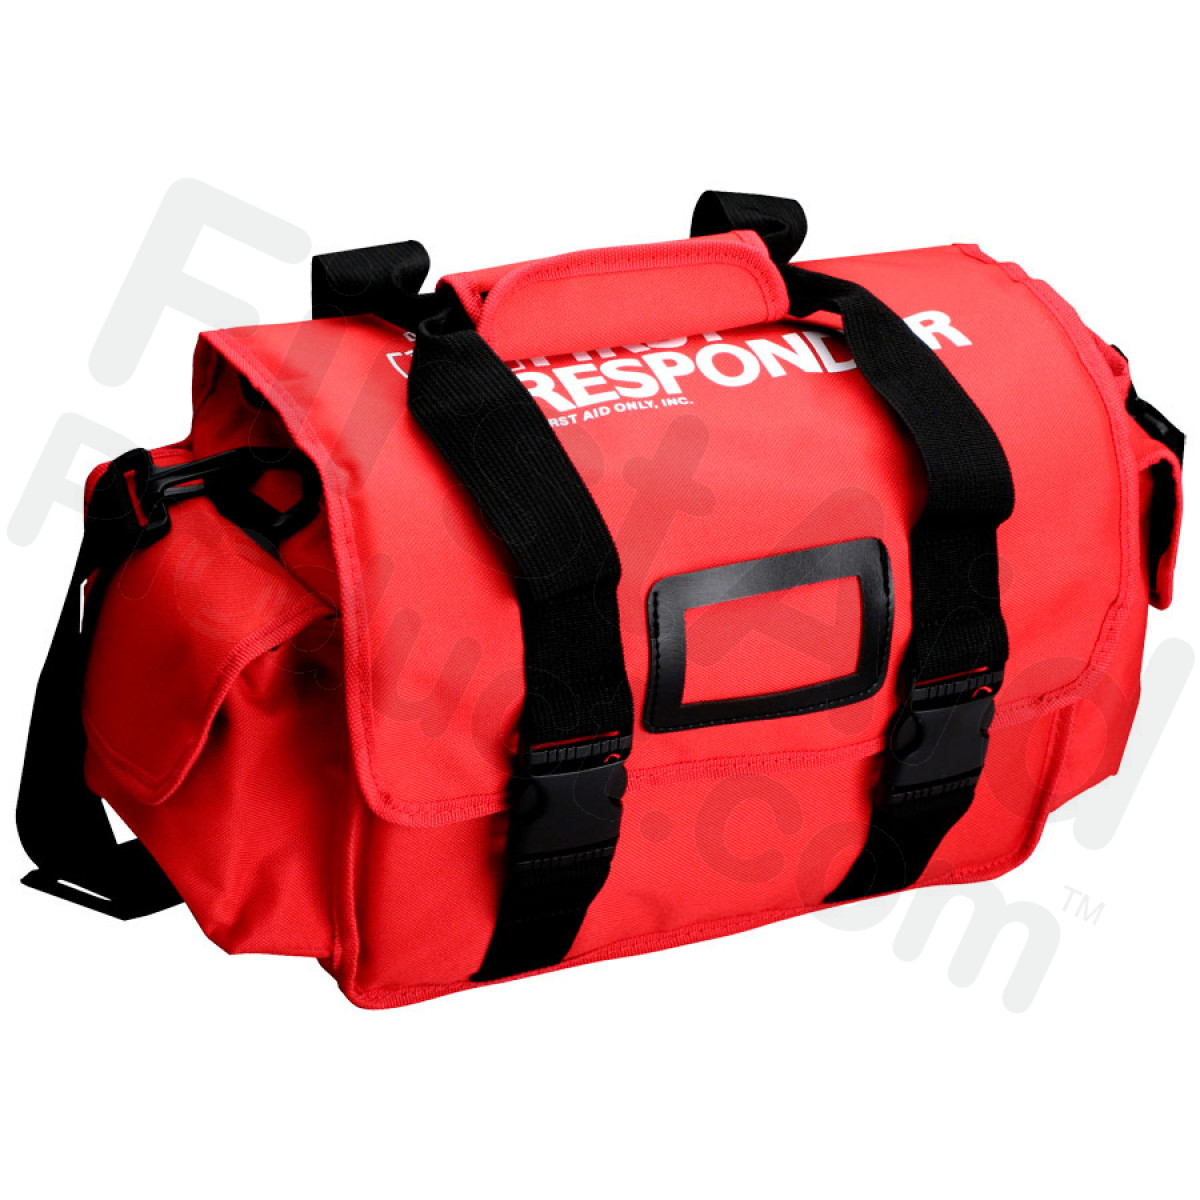 First Responder Bag Large With Logo